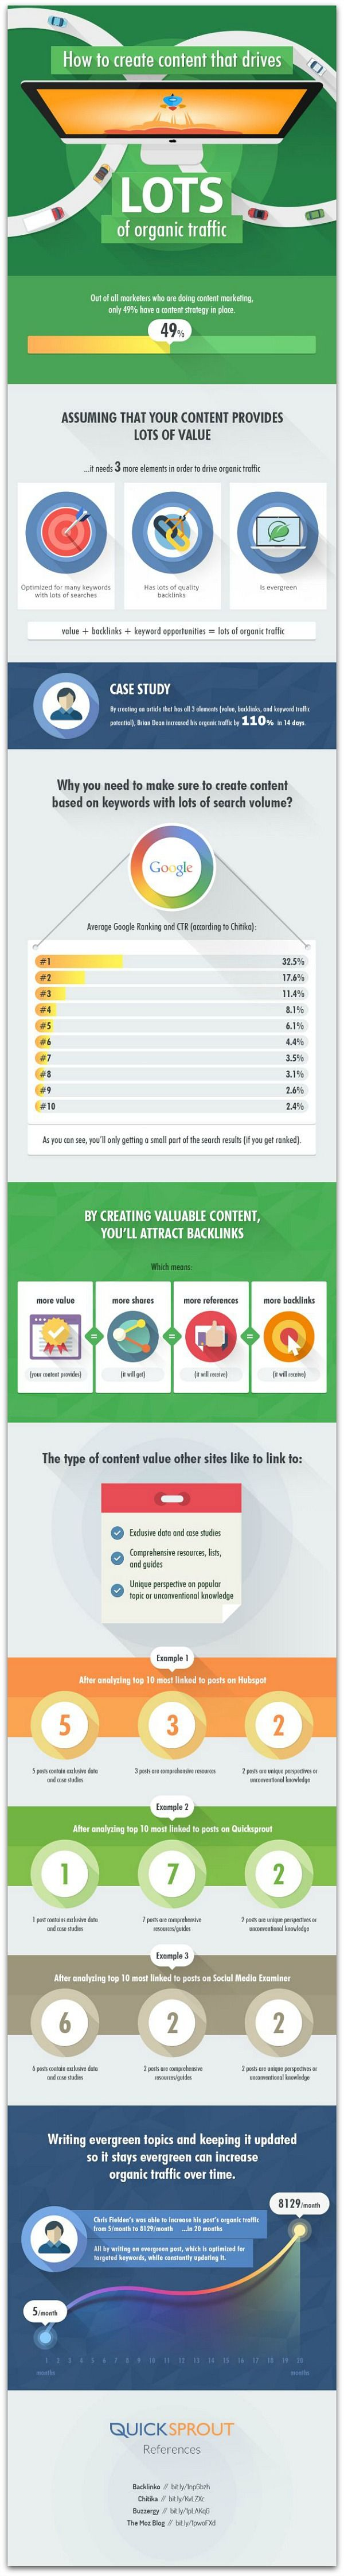 #Infographic: 4 elements that drive traffic to content